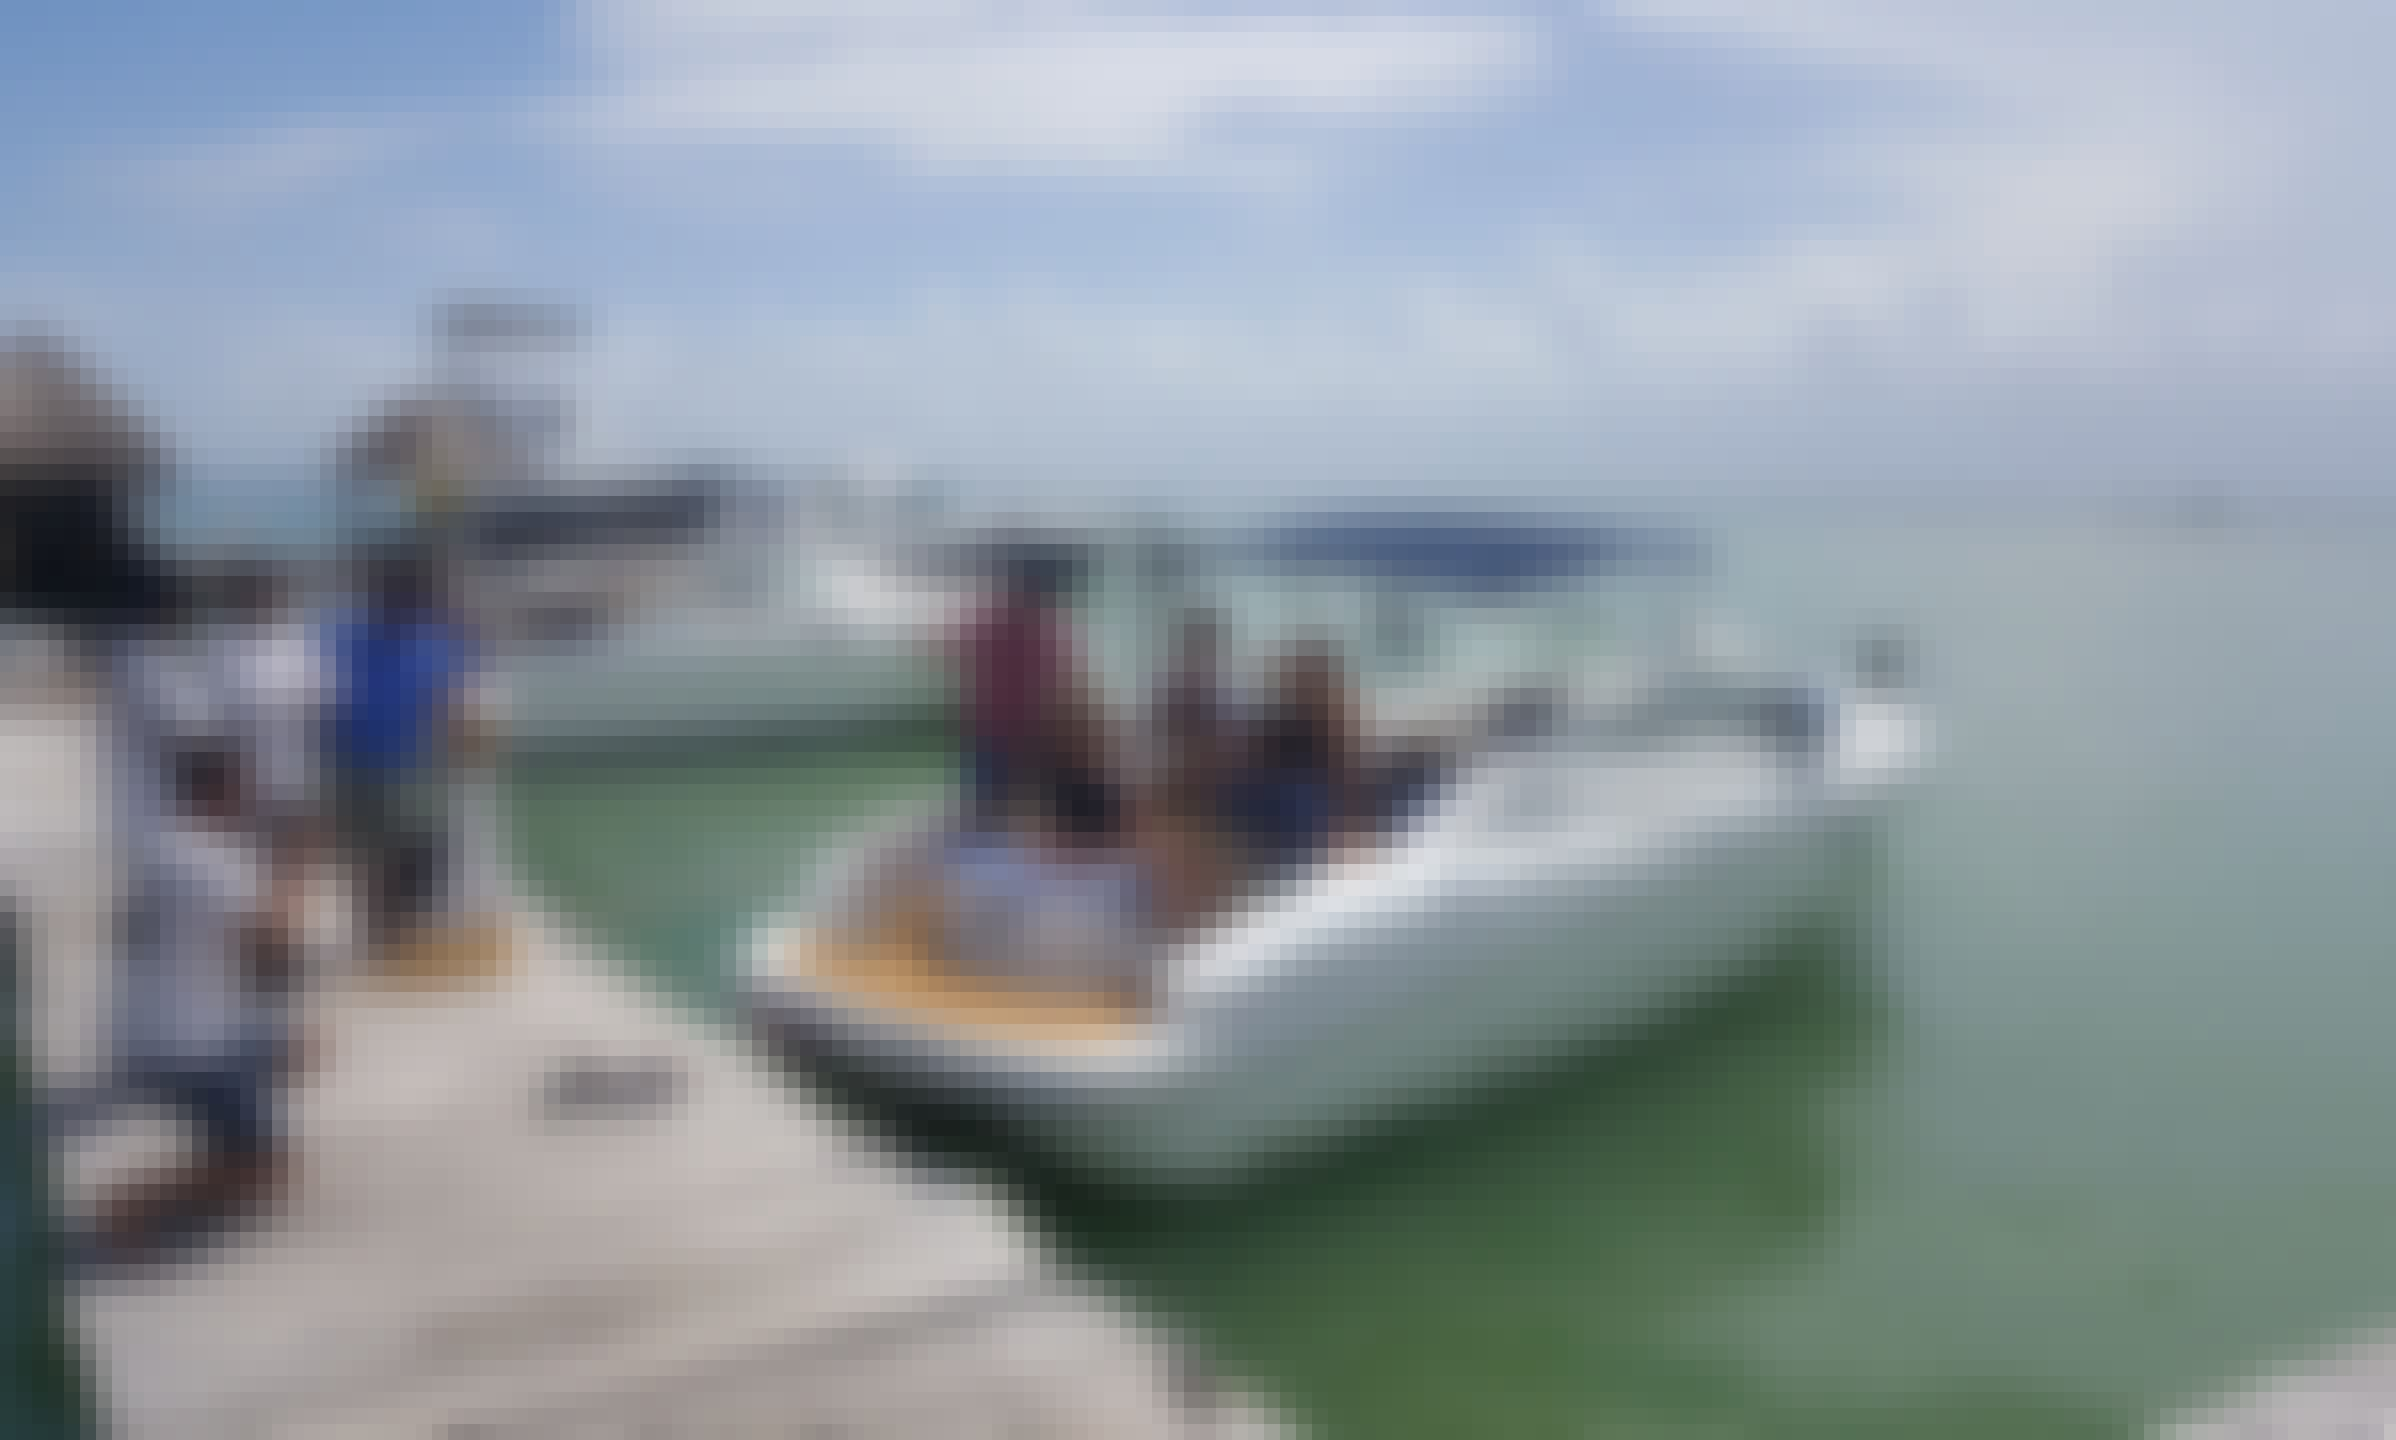 Powerful 10 Passengers Yacht Low Cost to Enjoy the Best of Cancun, Mexico